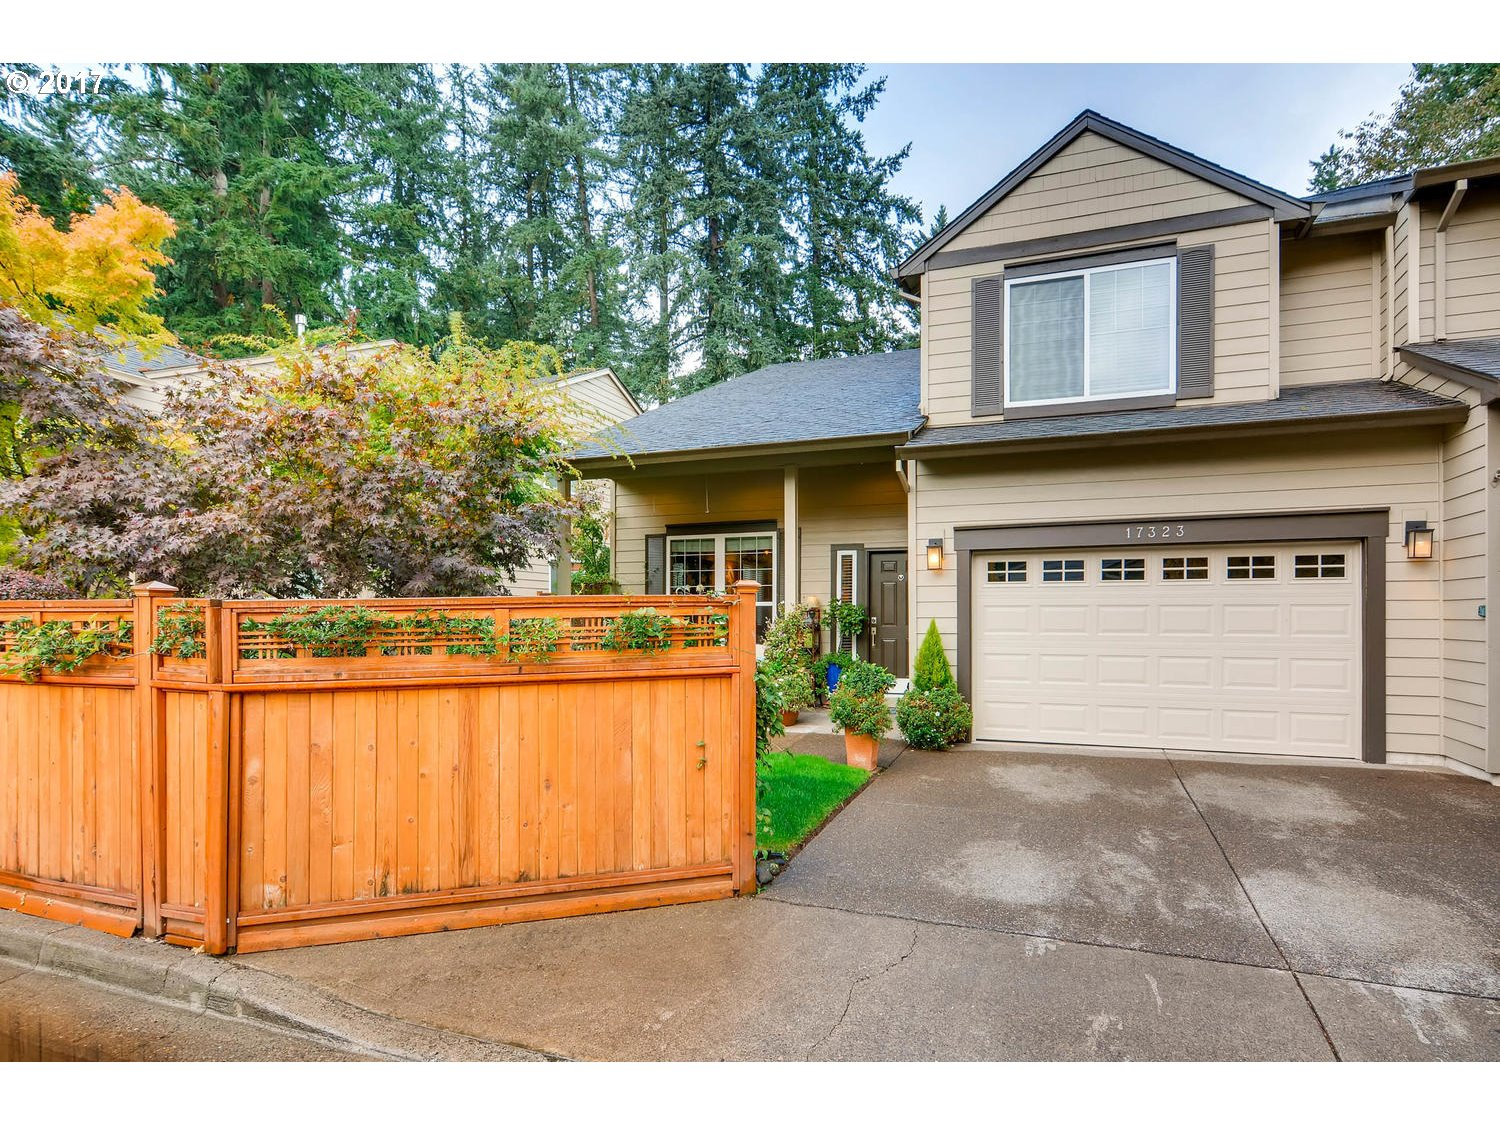 17323 ASHLEY CT, Lake Oswego, OR 97035